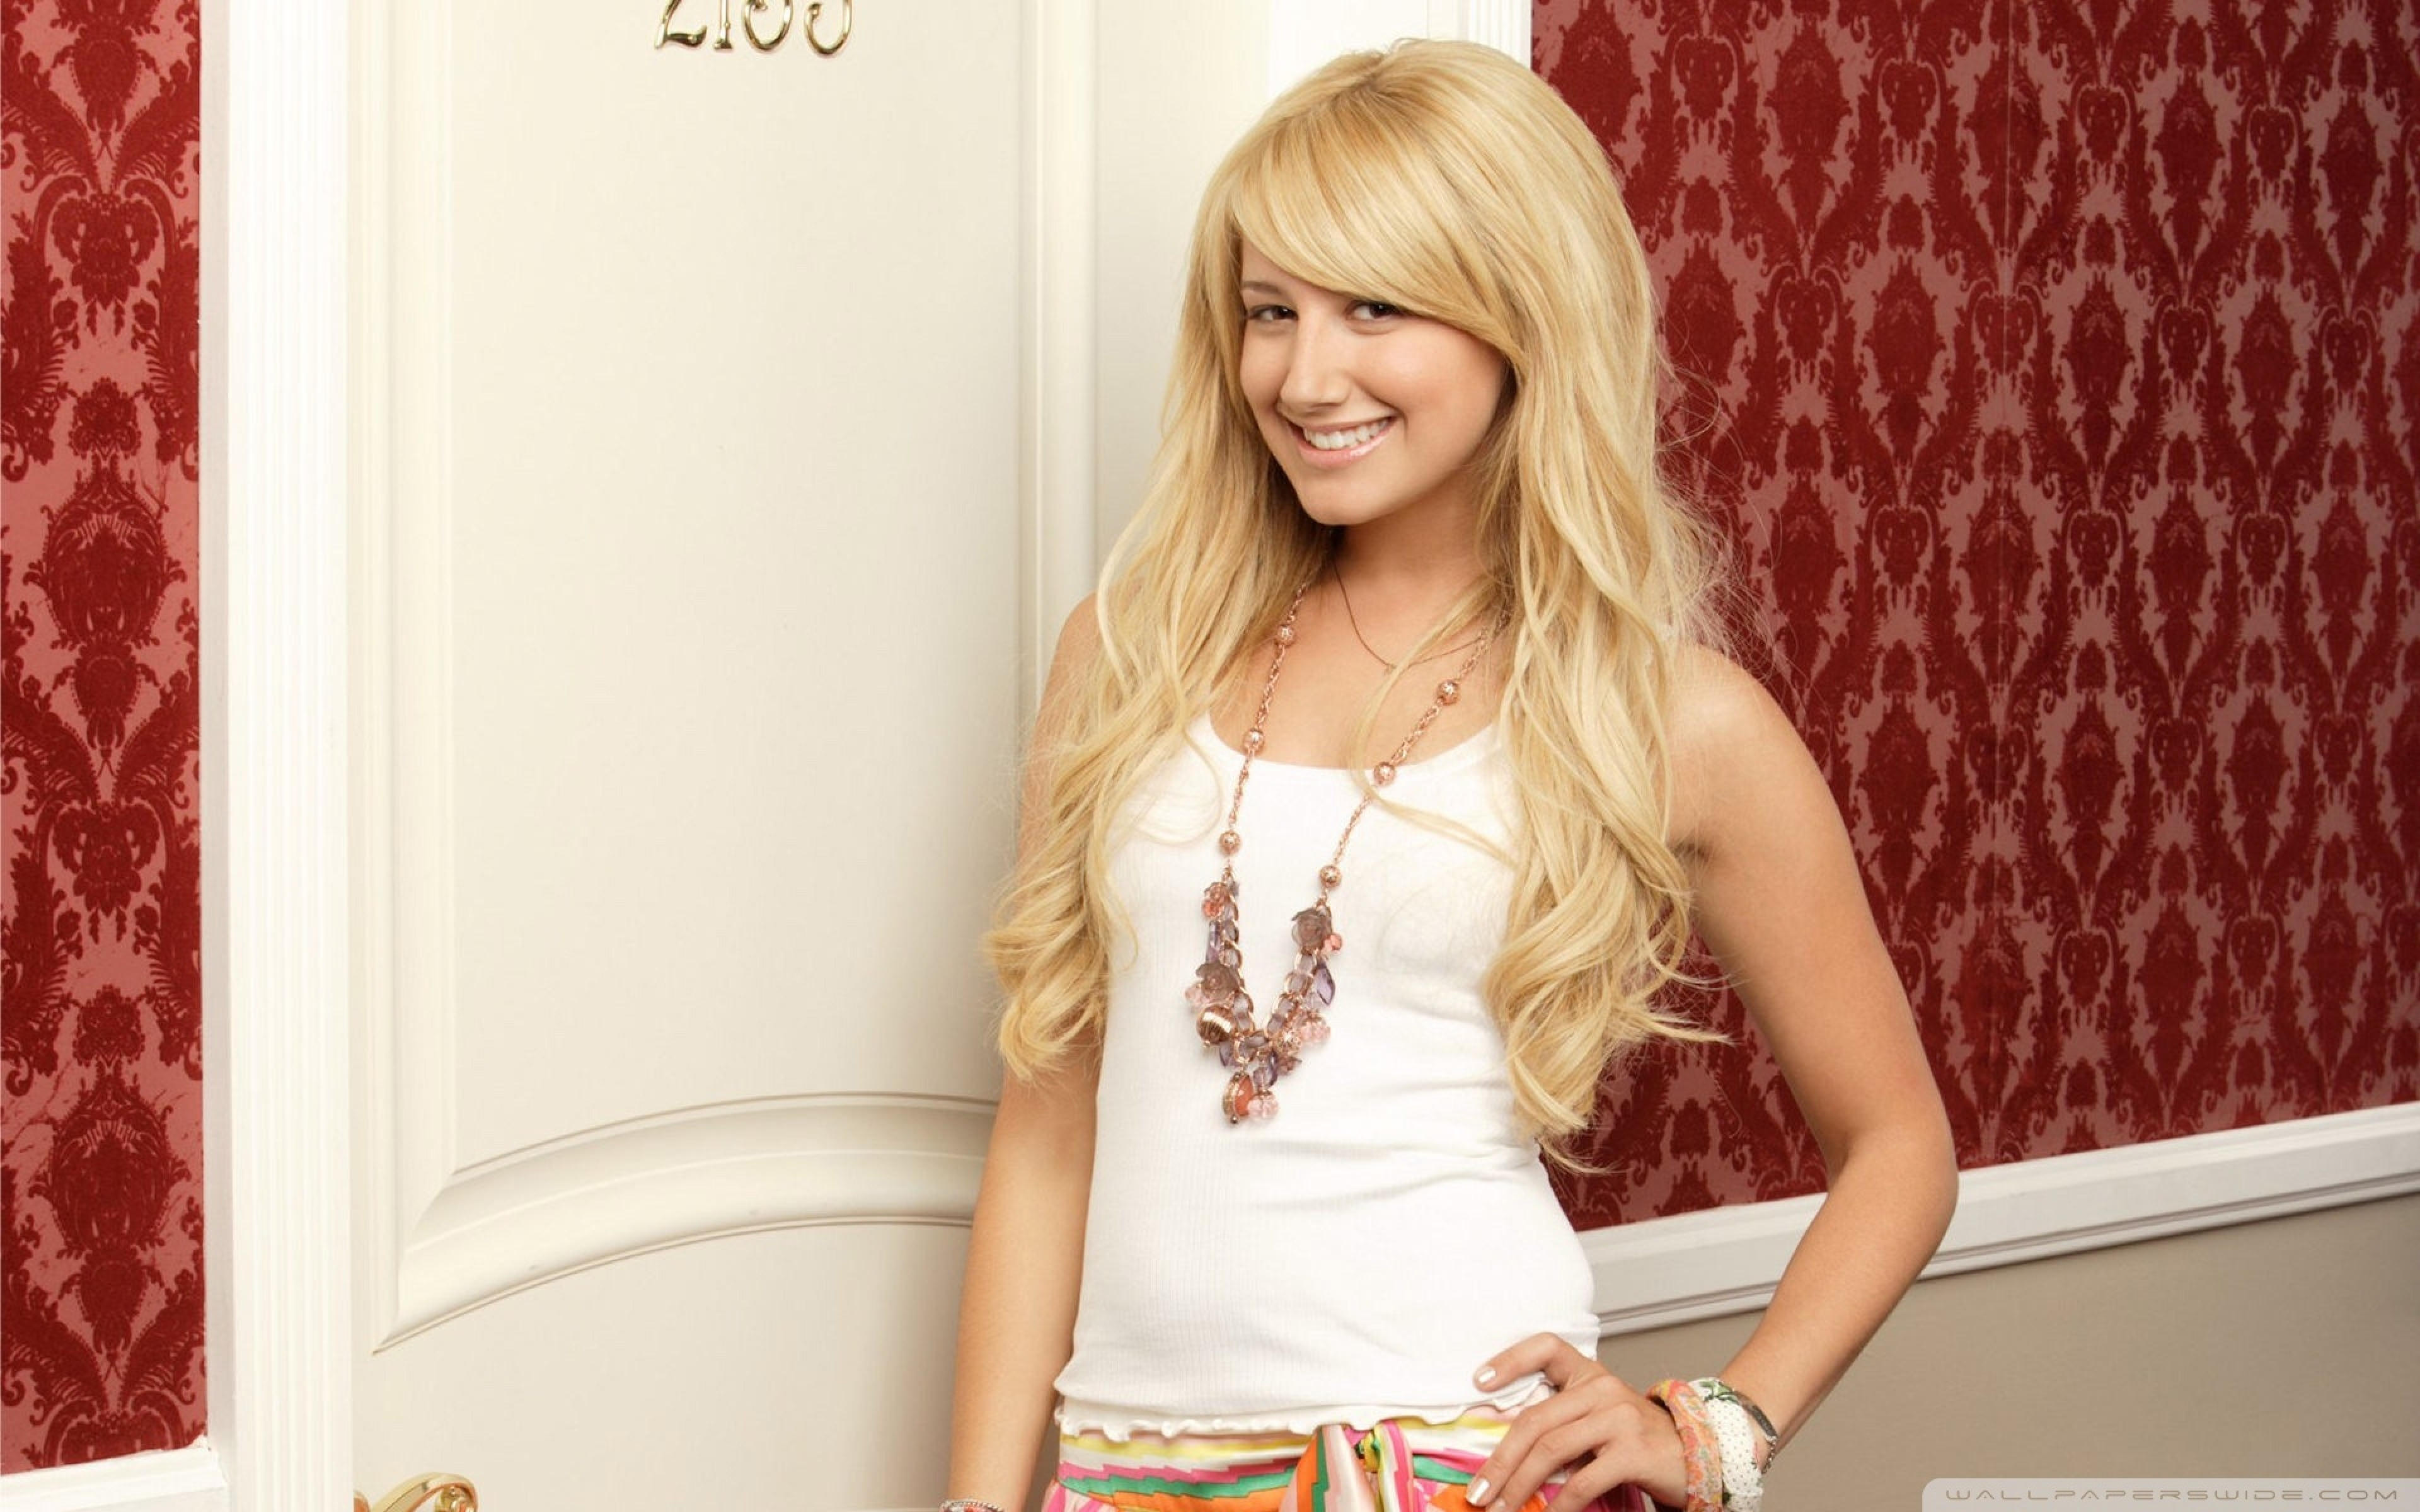 3840x2400 - Ashley Tisdale Wallpapers 12